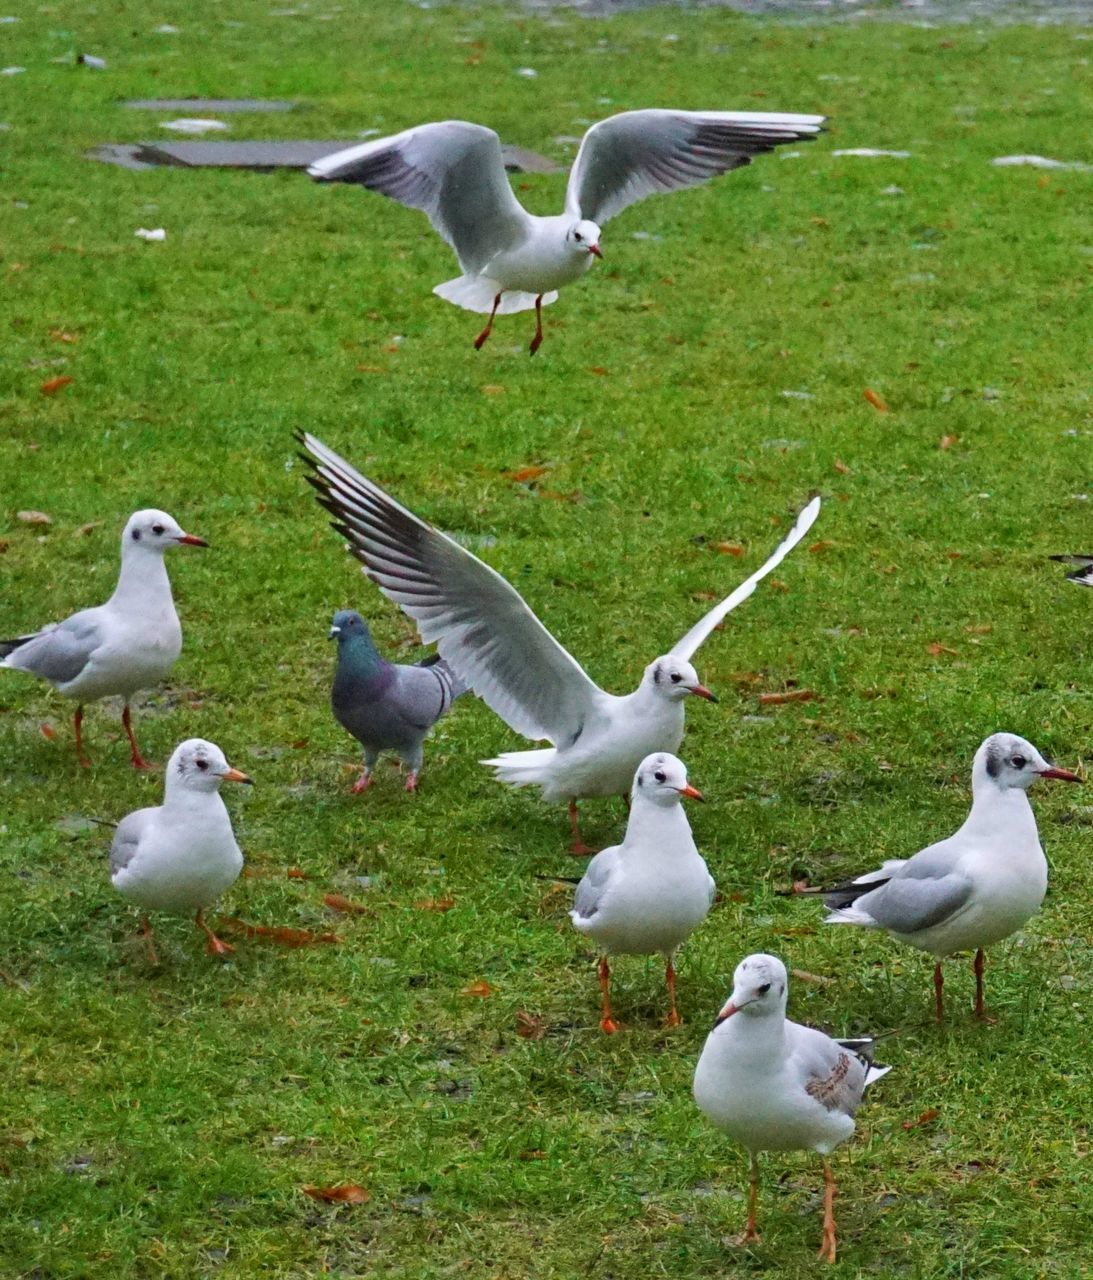 bird, animal themes, animals in the wild, animal wildlife, nature, spread wings, flying, day, seagull, outdoors, field, beauty in nature, large group of animals, no people, goose, grass, water